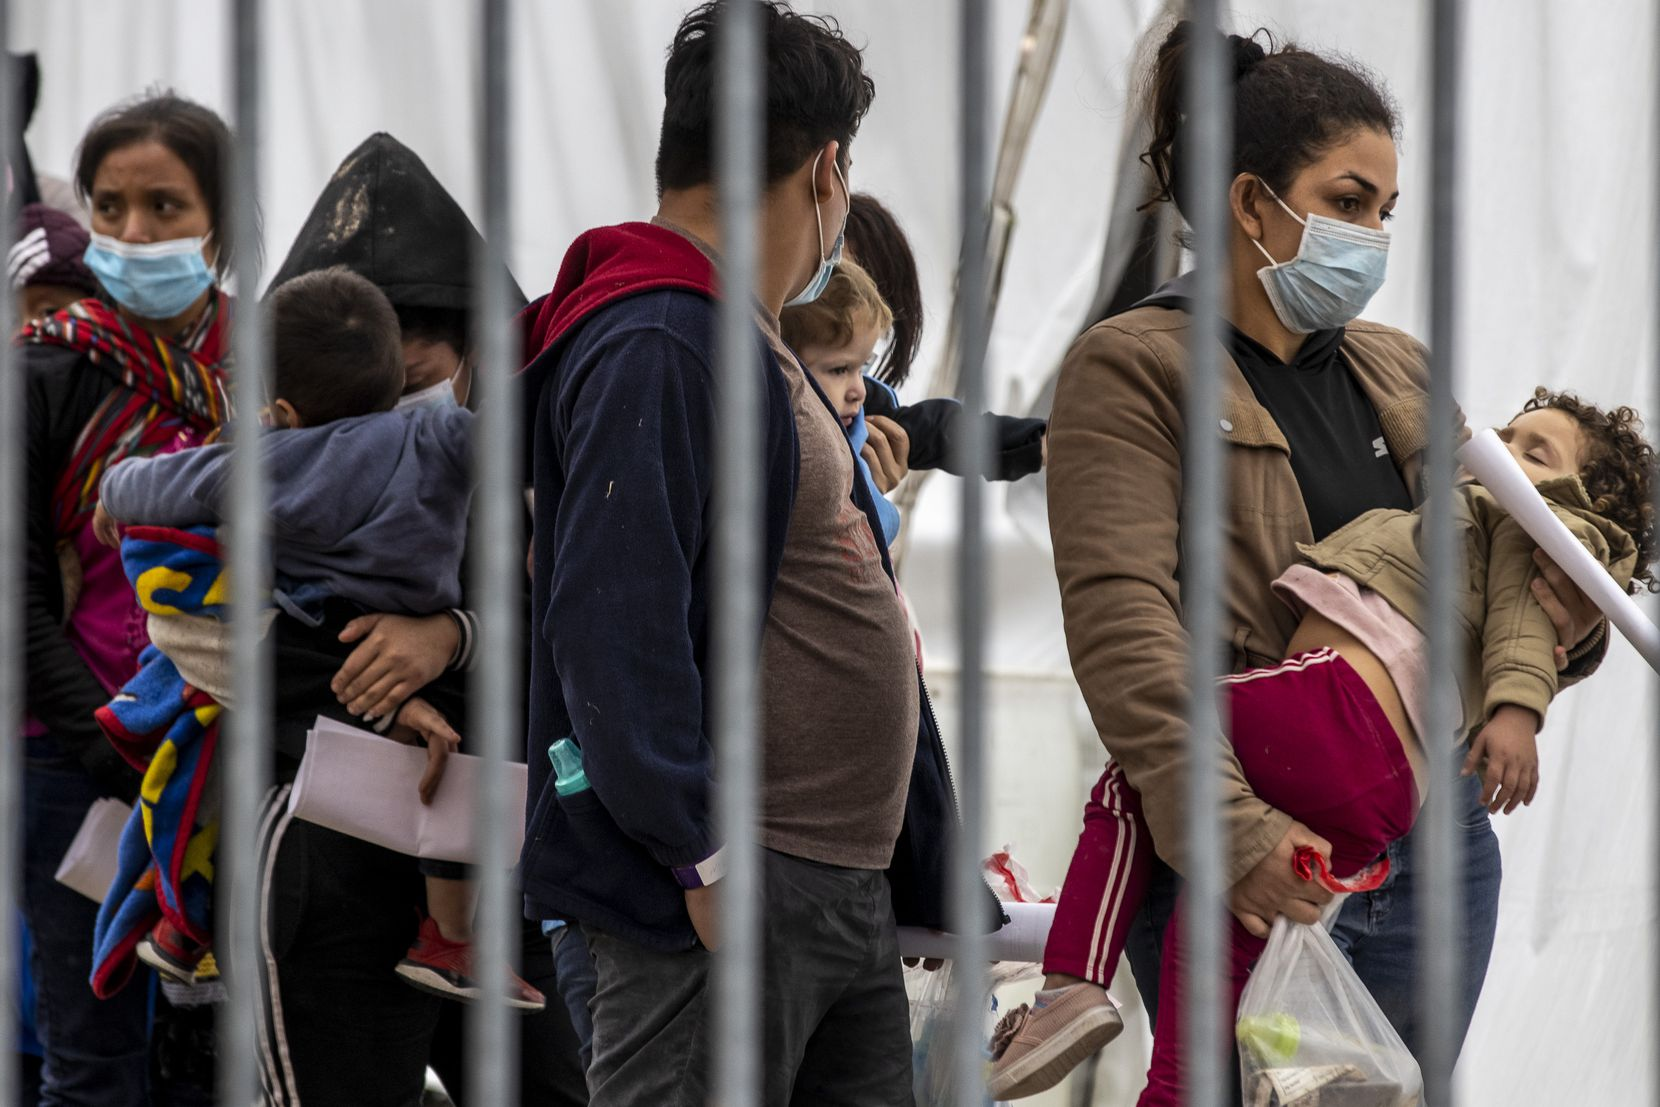 A woman carrying a small child waits in line with other migrant families to be tested for COVID-19 at a tent facility set up across the bus station in McAllen, Texas, on Sunday, March 28, 2021. These families were then transported to the nearby respite center operated by Catholic Charities.